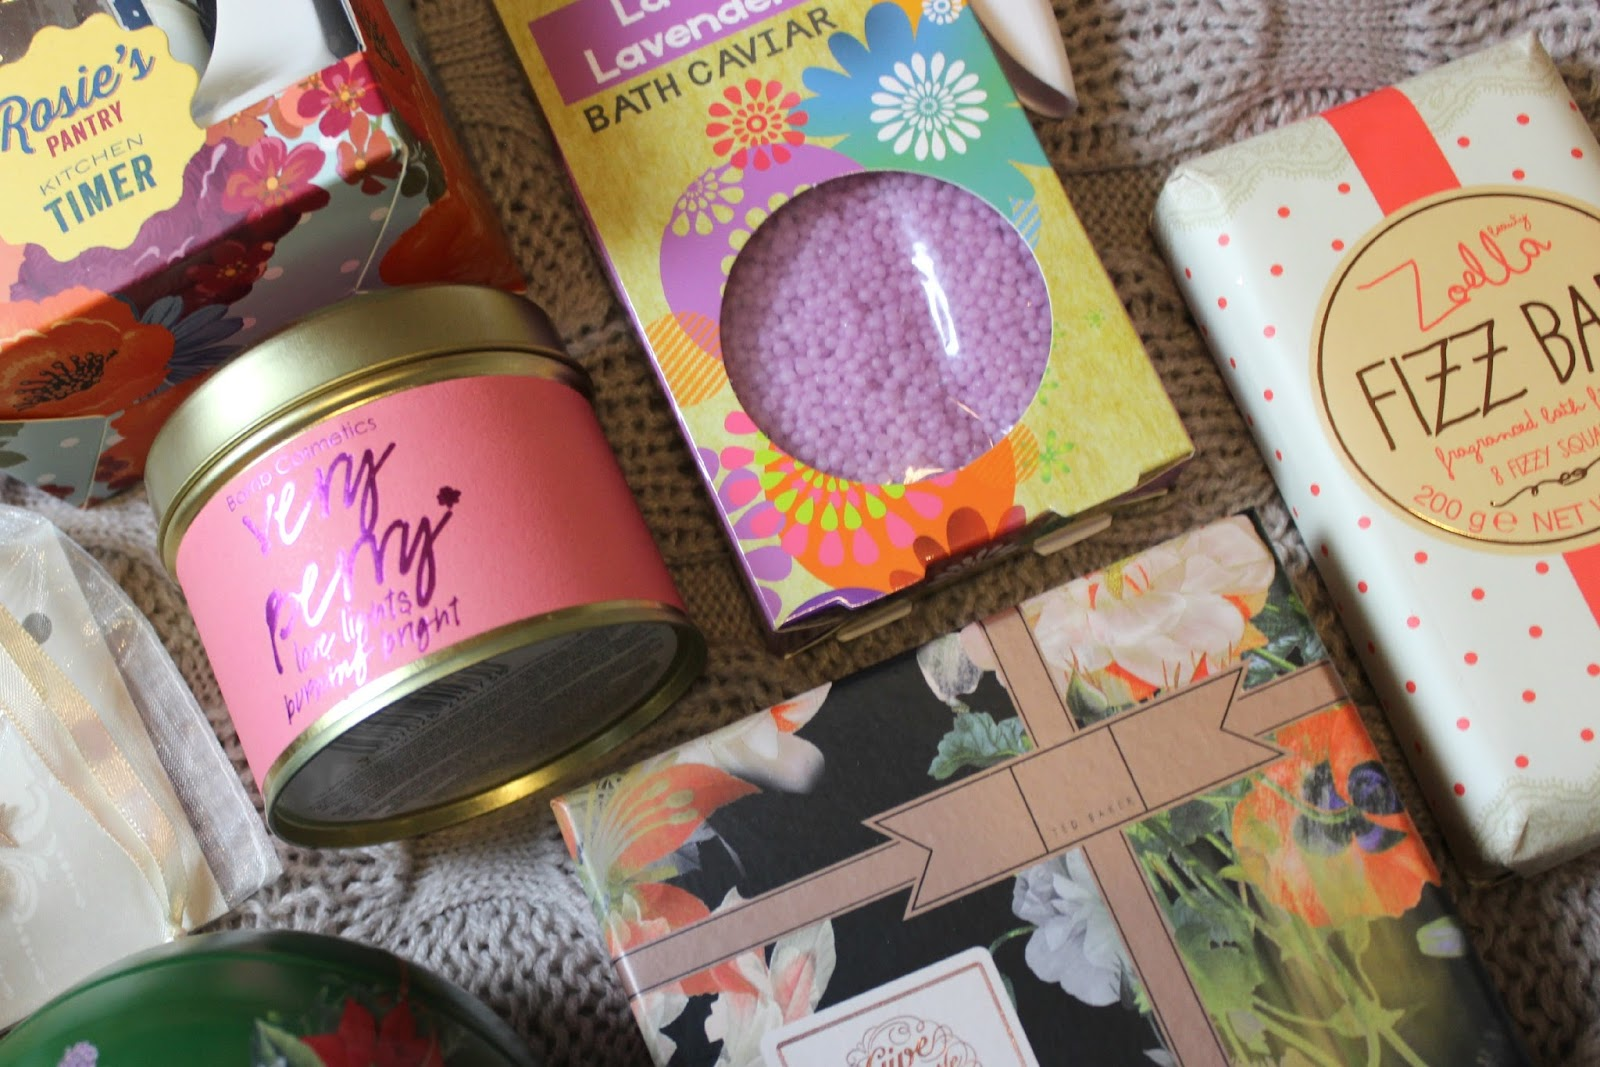 A picture of the Bomb Cosmetics Very Berry Scented Candle Tin